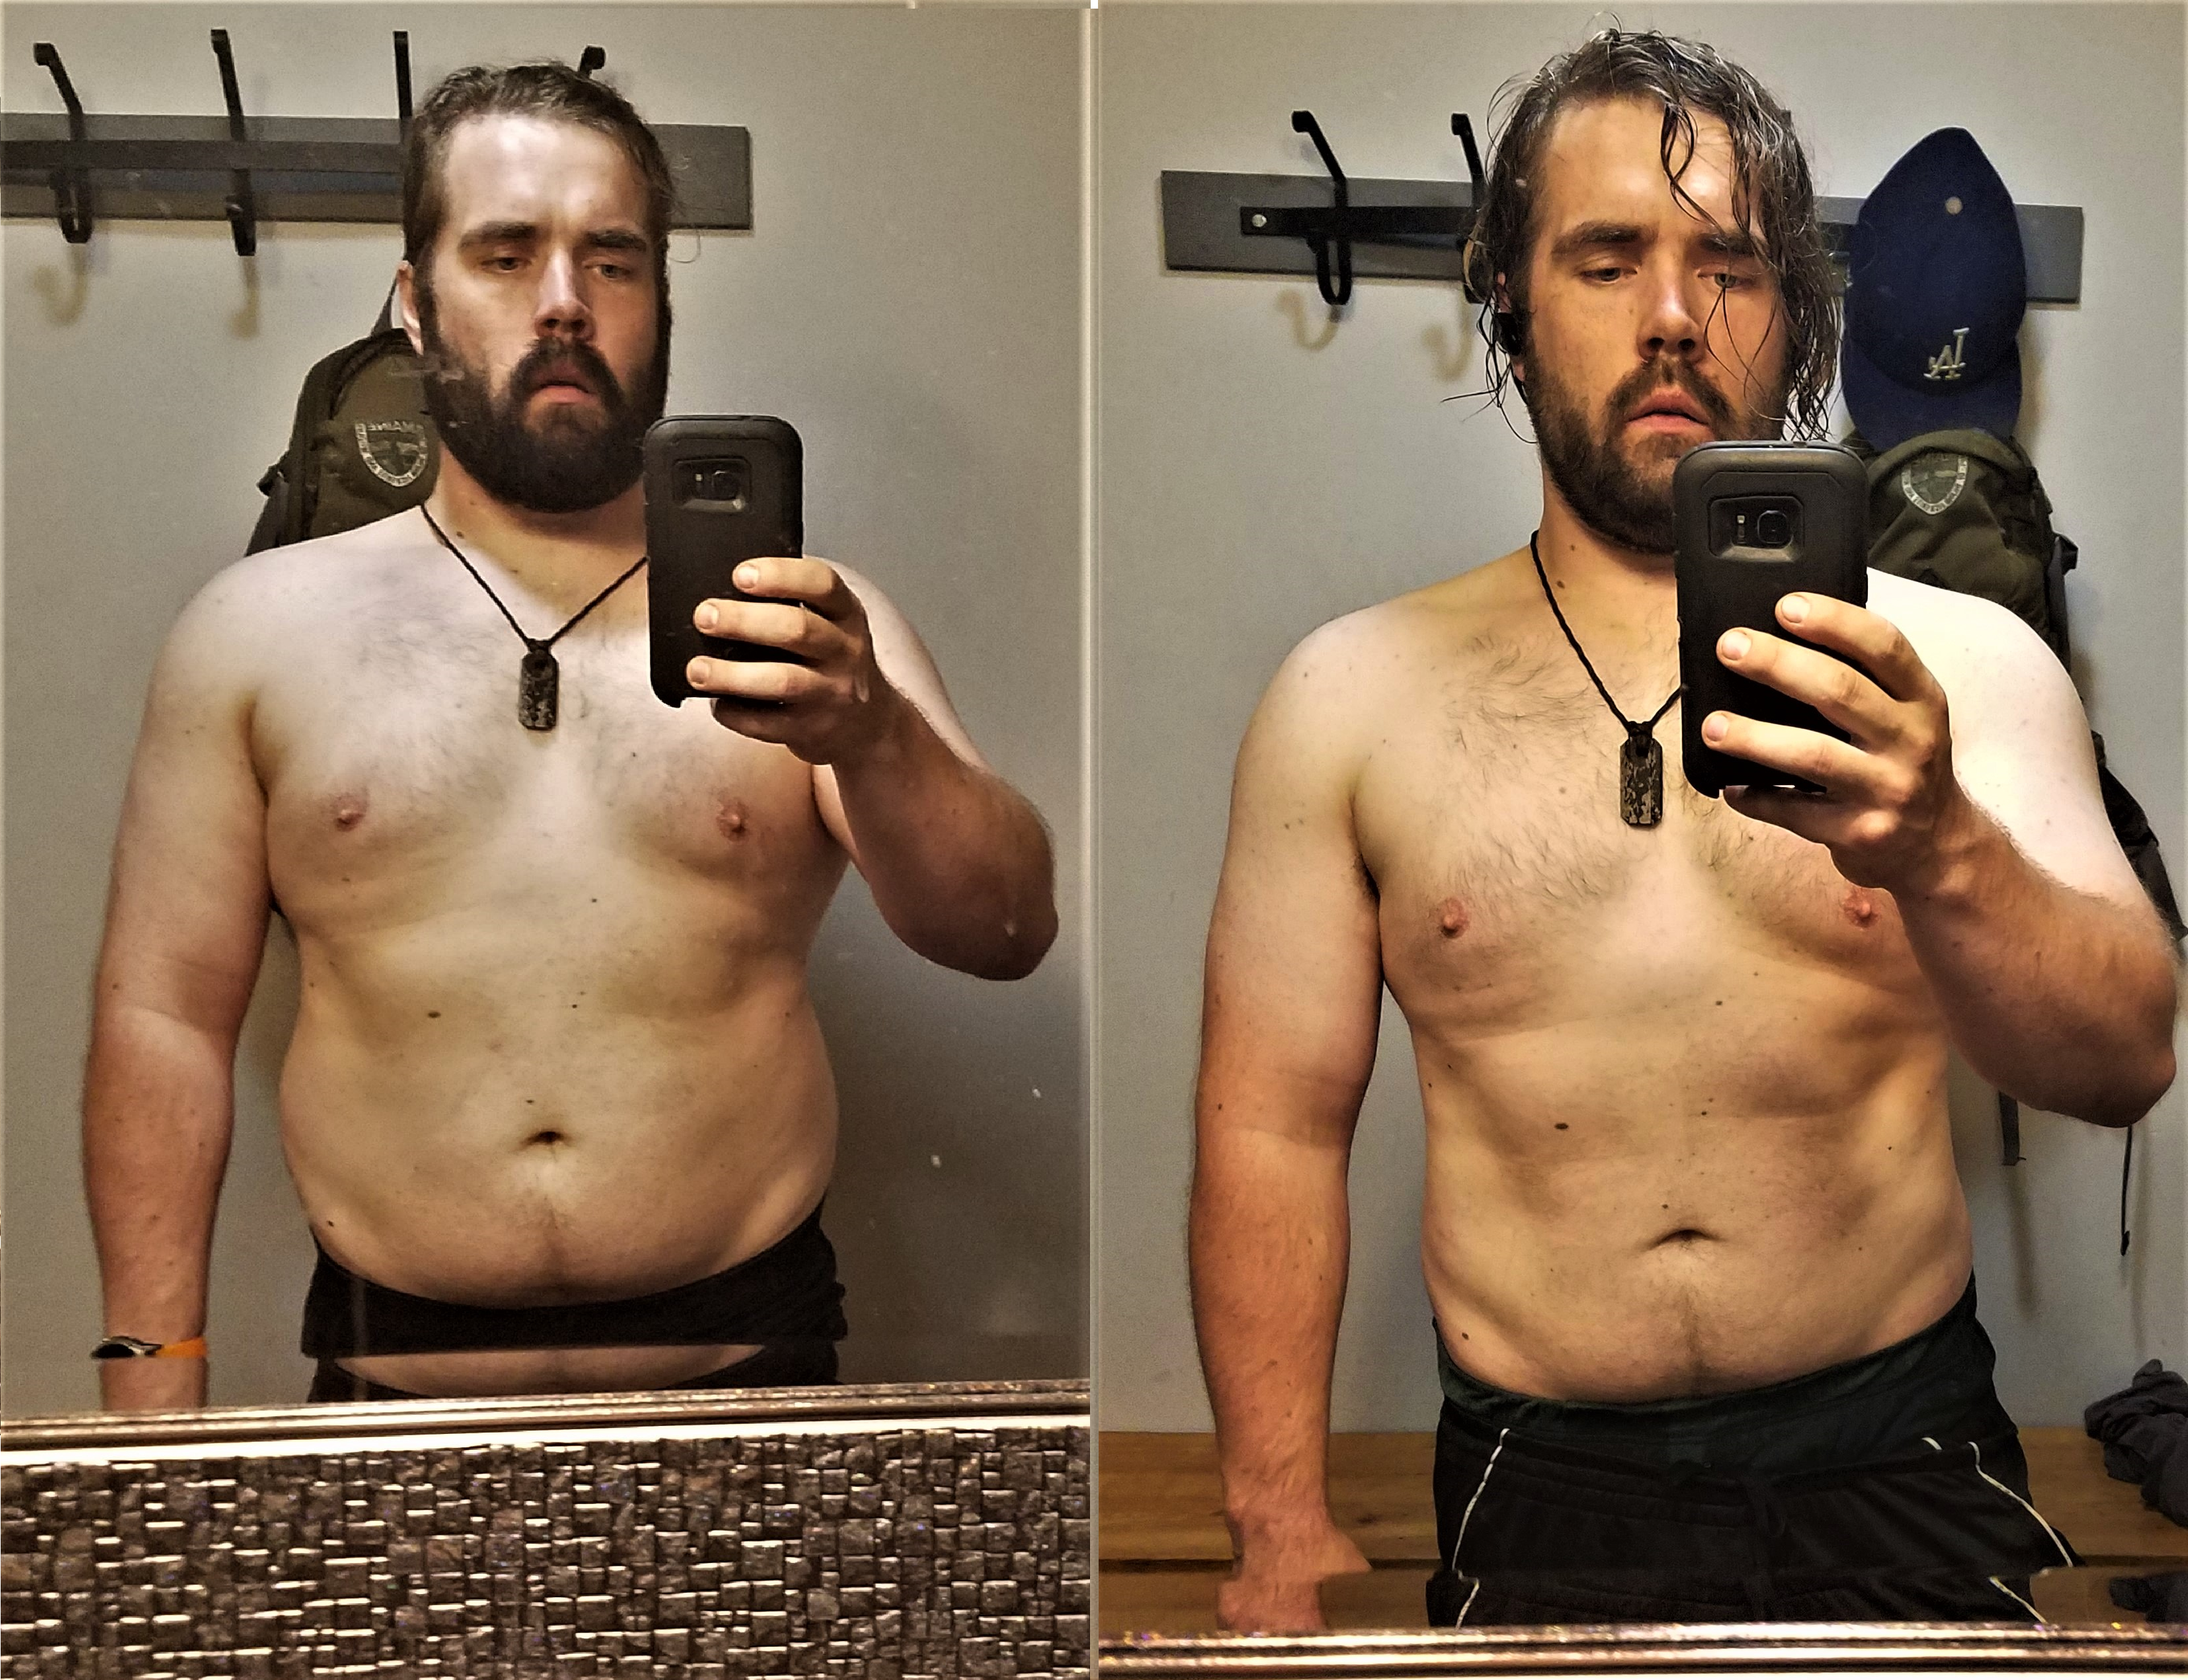 5 feet 11 Male Before and After 20 lbs Weight Loss 265 lbs to 245 lbs